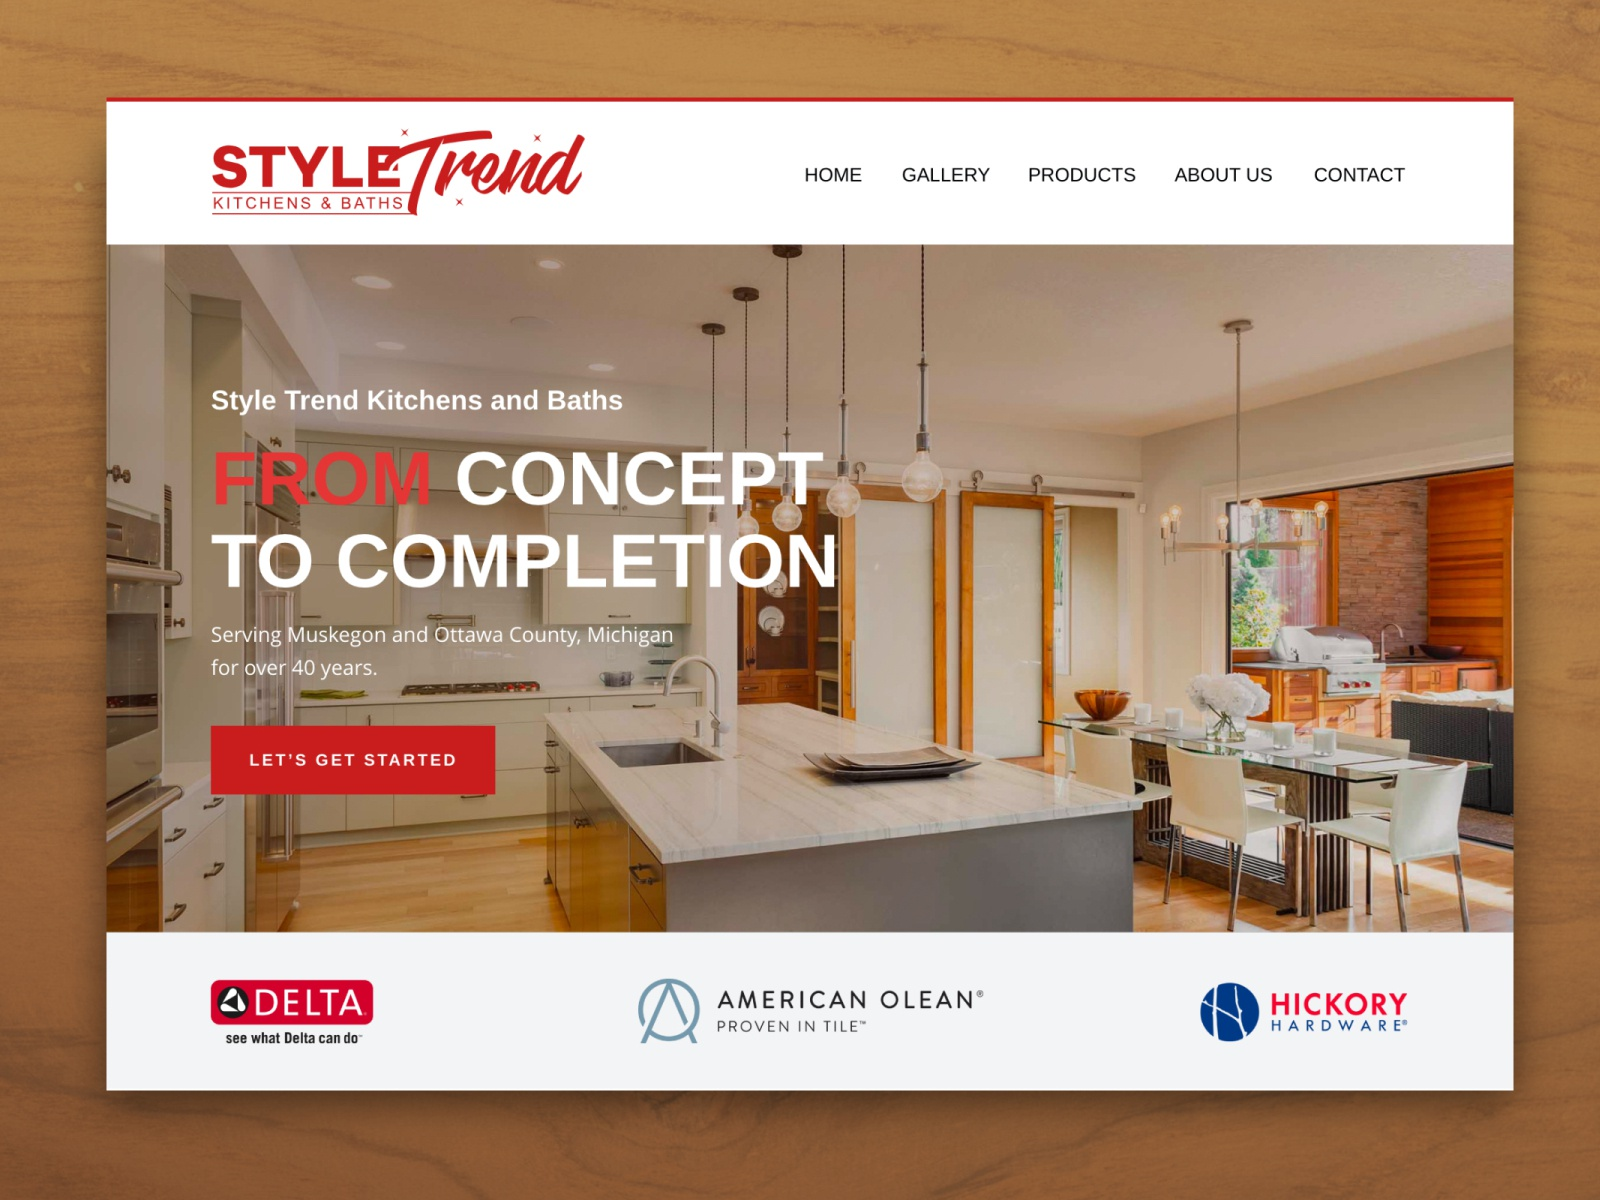 Style Trend Kitchen Baths Banner By Shama Mae Penaflor On Dribbble